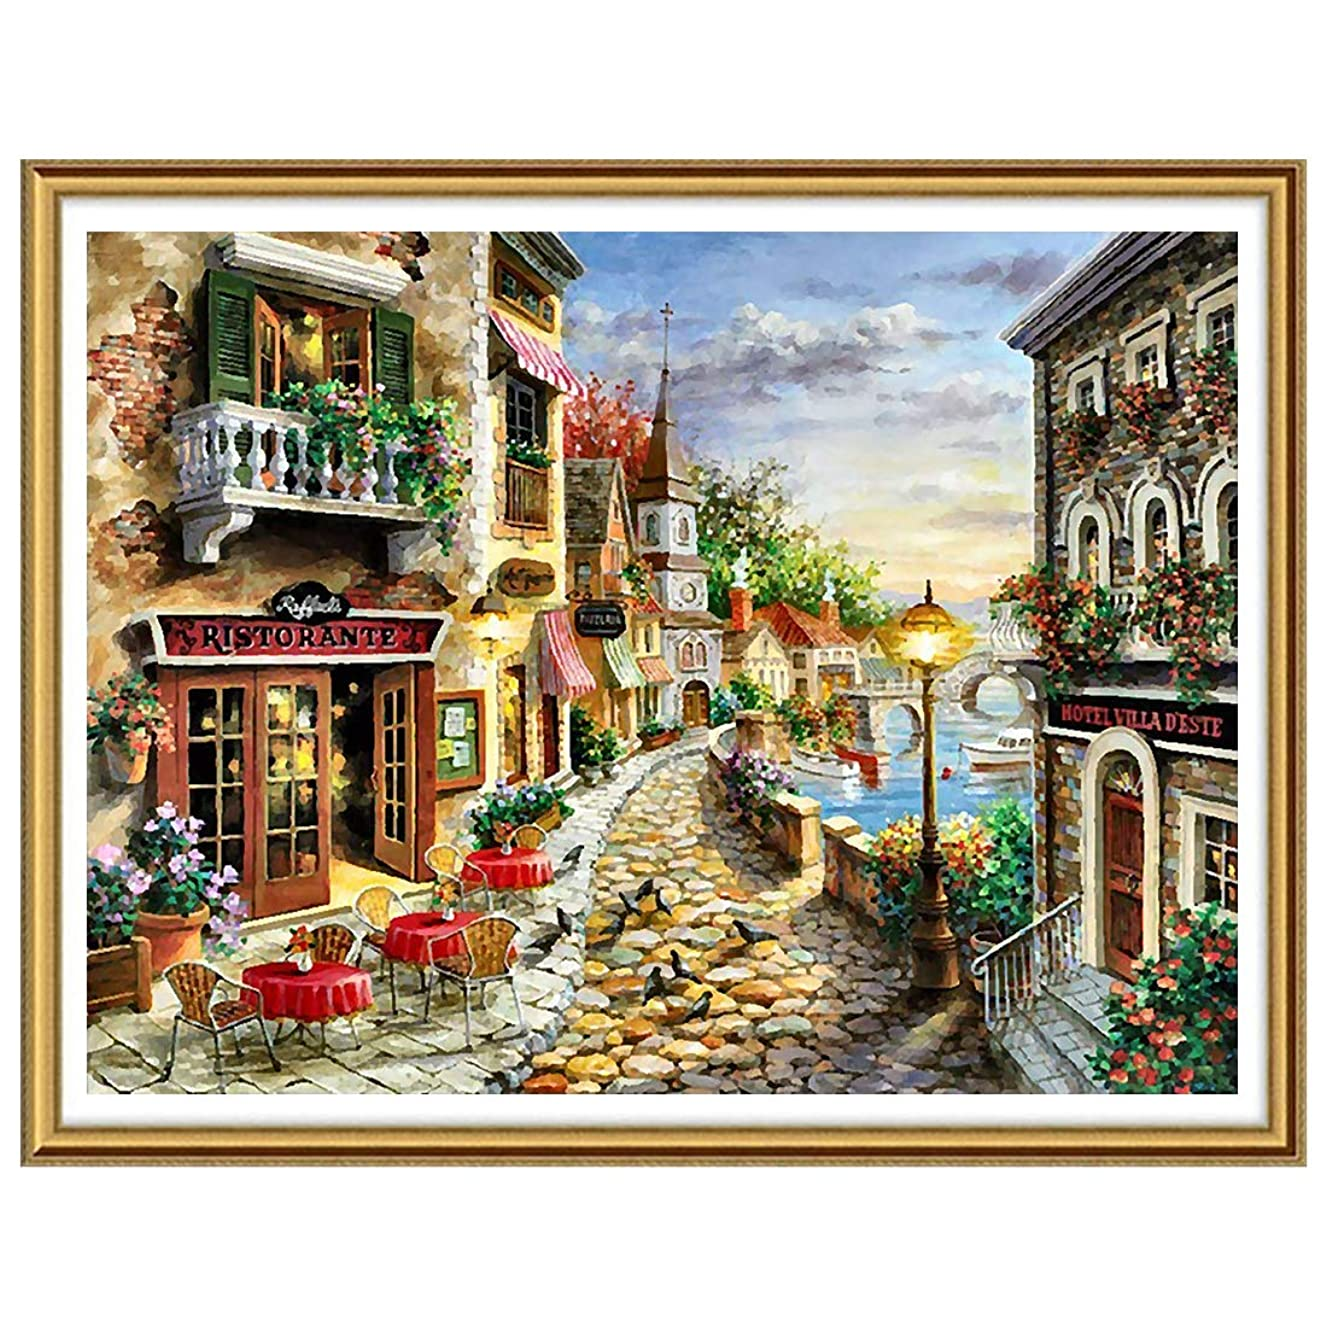 Ginfonr 5D Diamond Painting Full Drill Mediterranean Scenery by Number Kits for Adults, European Style DIY Paint with Diamonds Art Craft Rhinestone Cross Stitch Decor (12x16 inch)